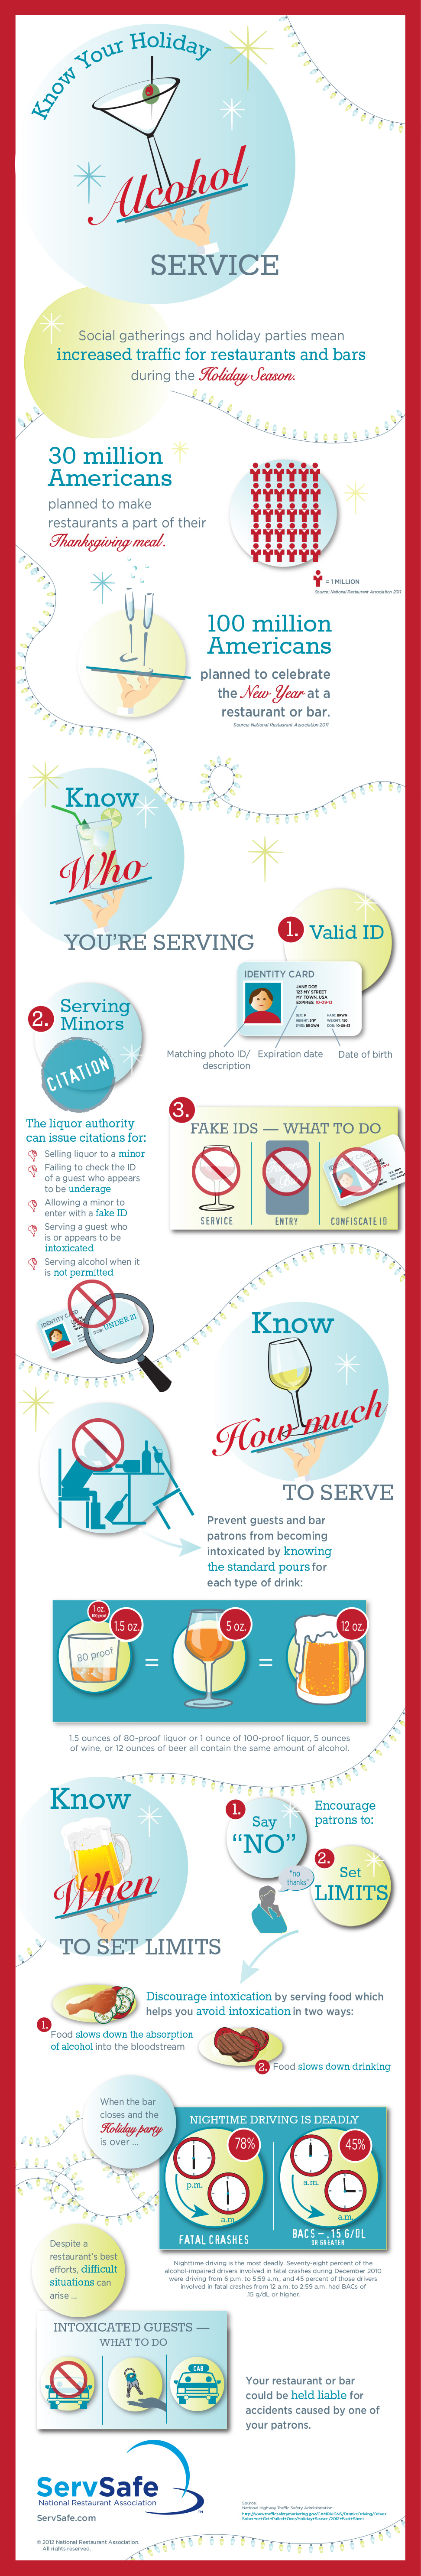 Know your holiday alcohol service